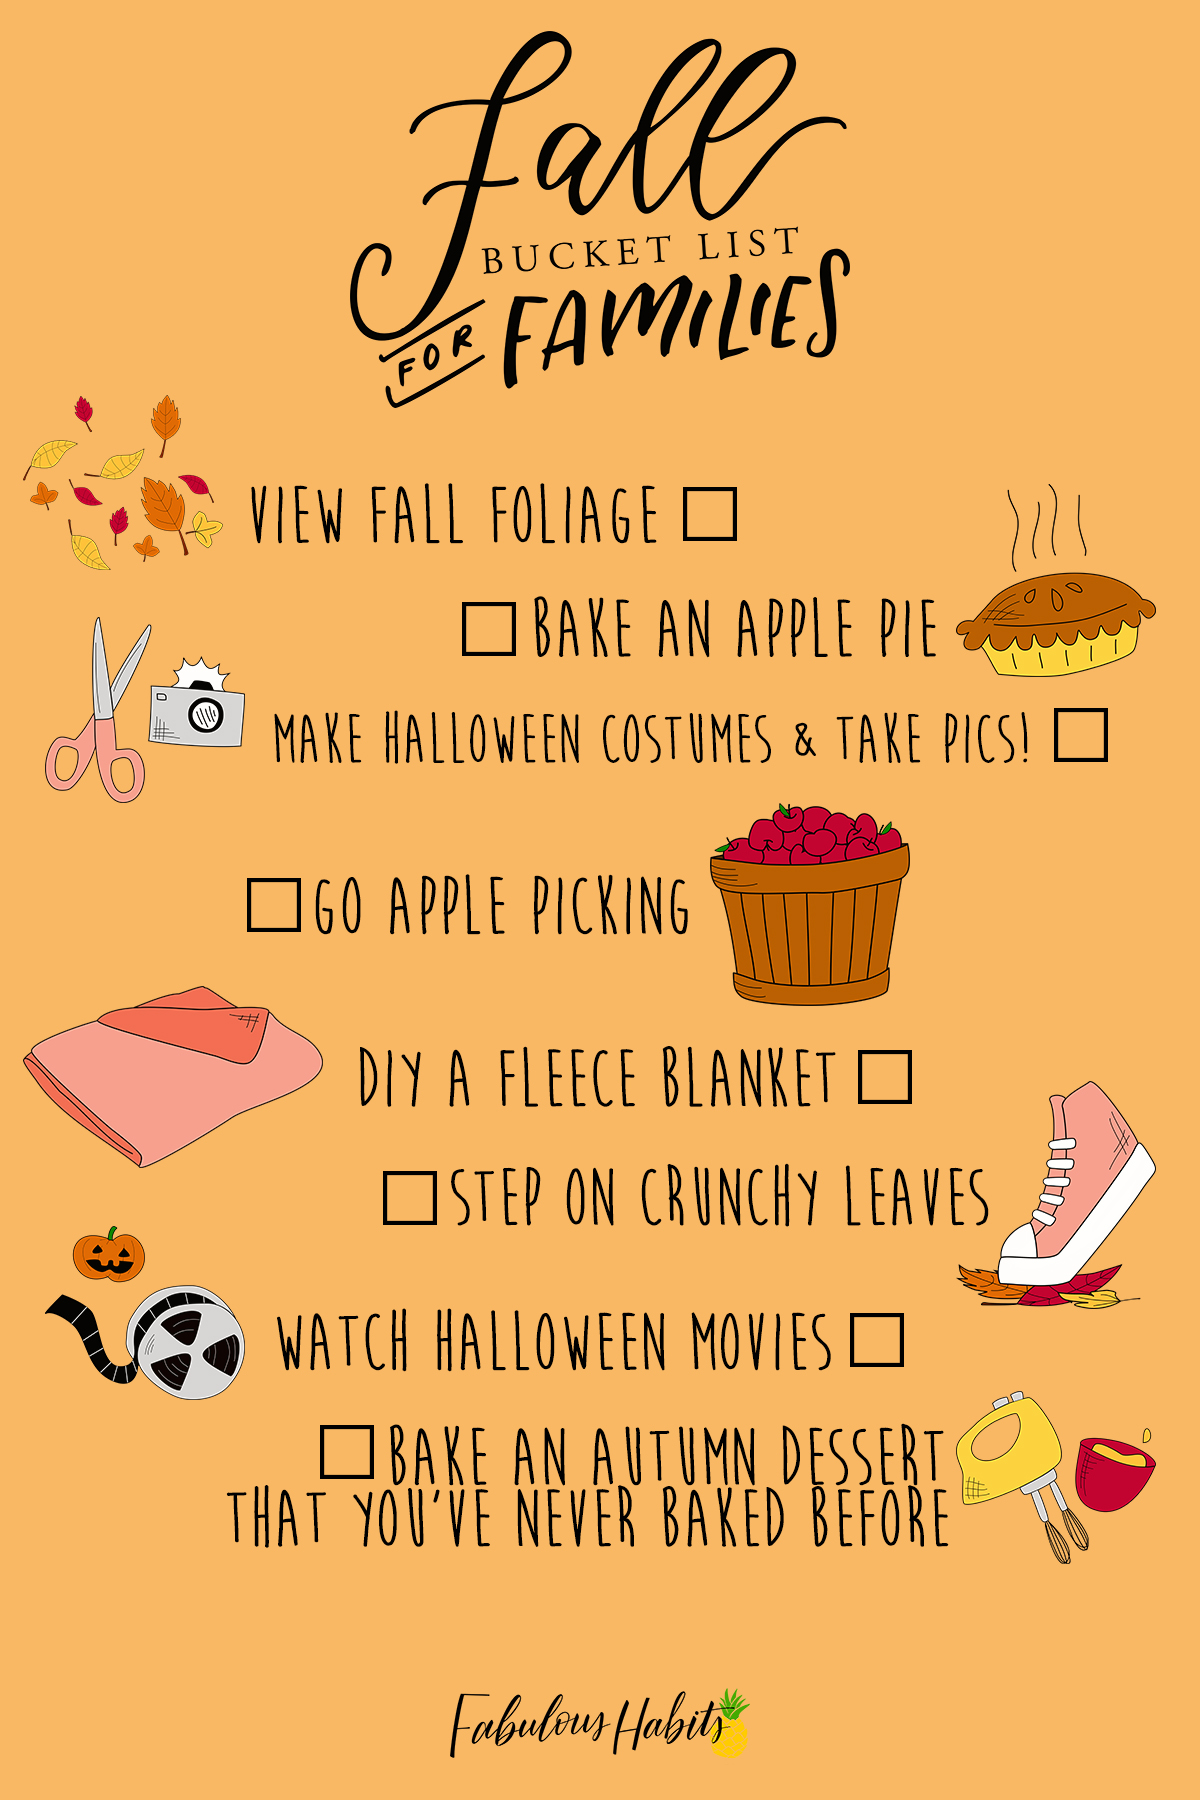 Here are the must-do's of the season! I present to you: our official Fall Bucket List for Families